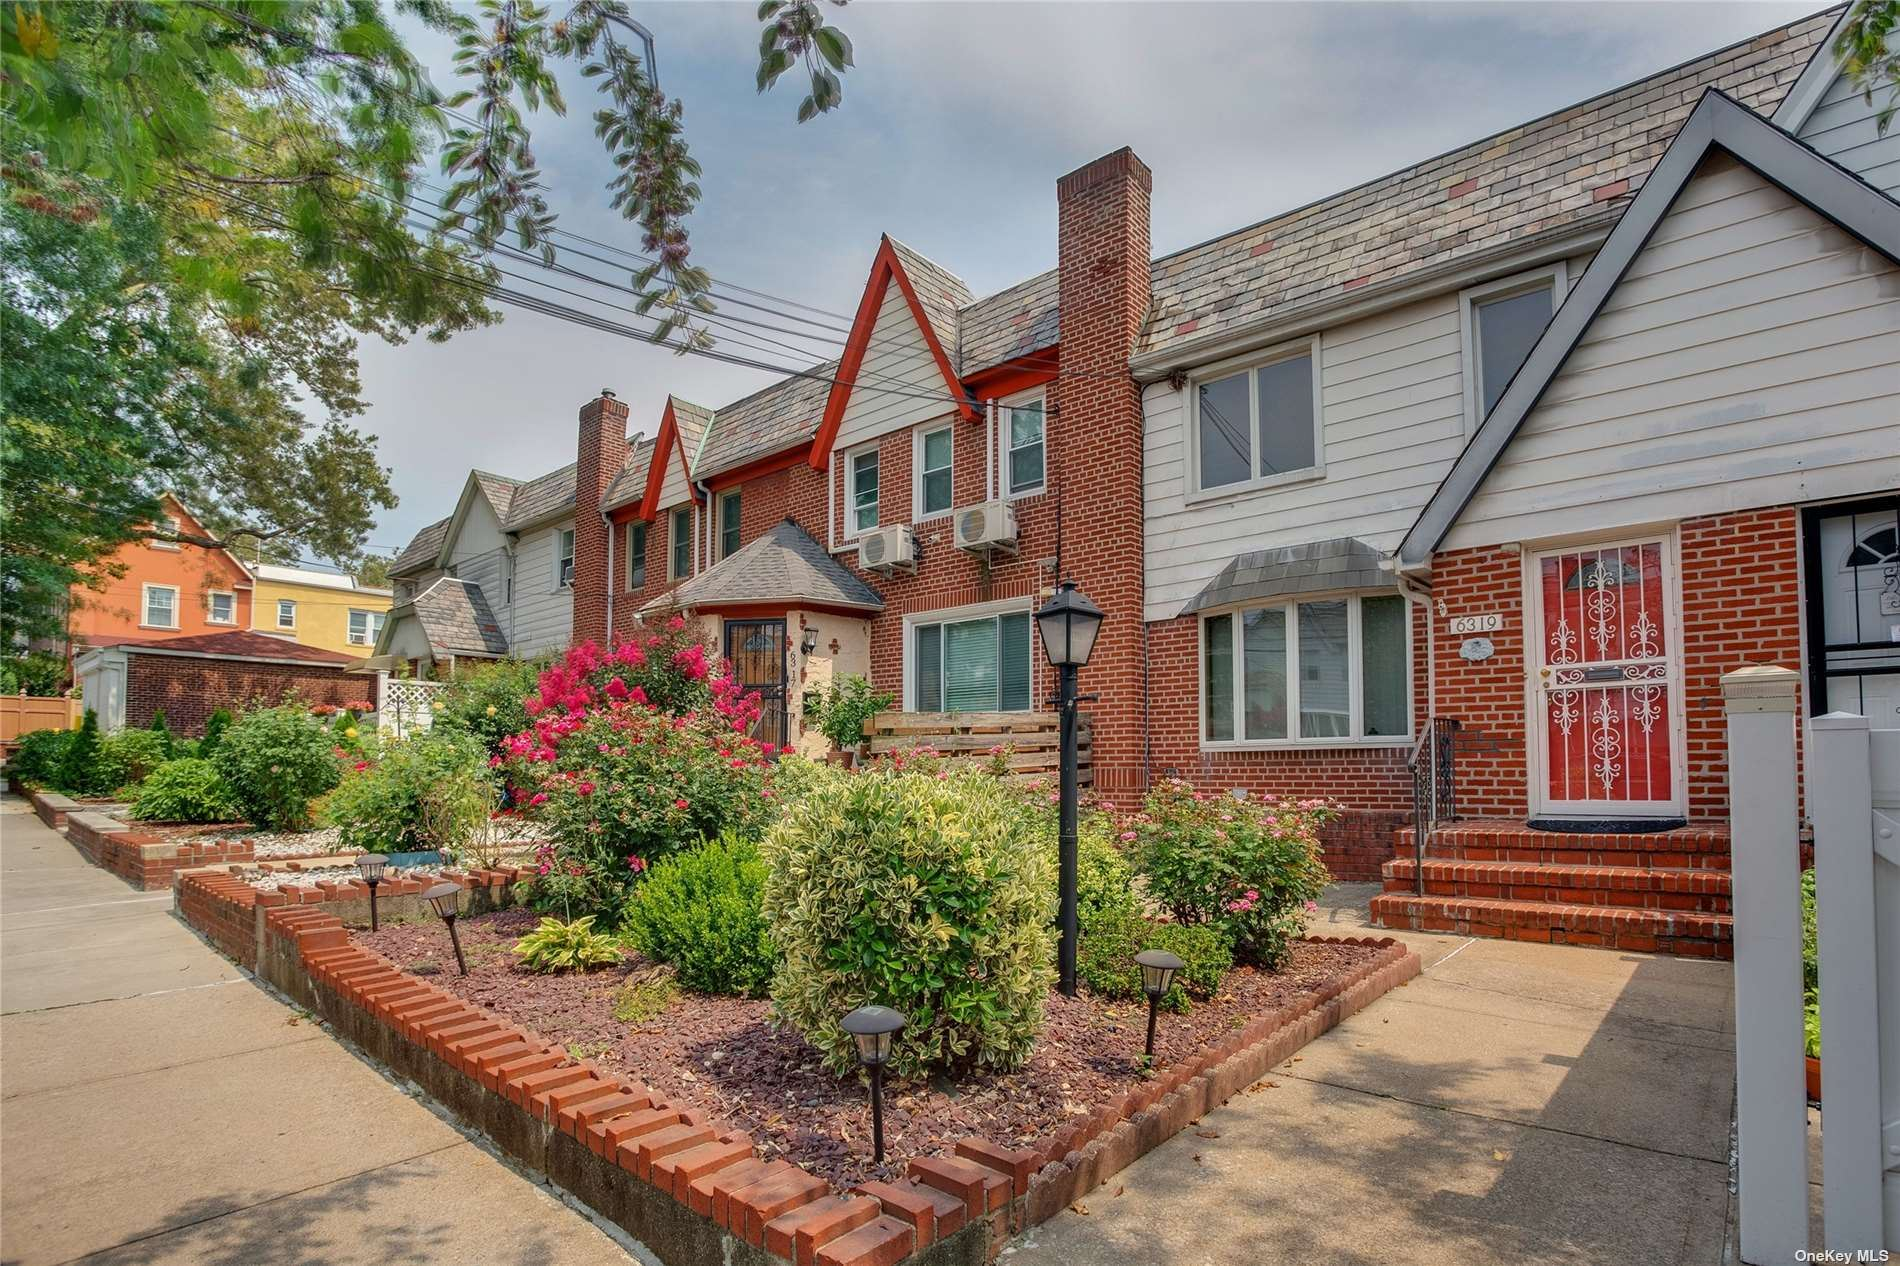 63-19 83rd Place, Middle Village, NY 11379 - MLS#: 3332508